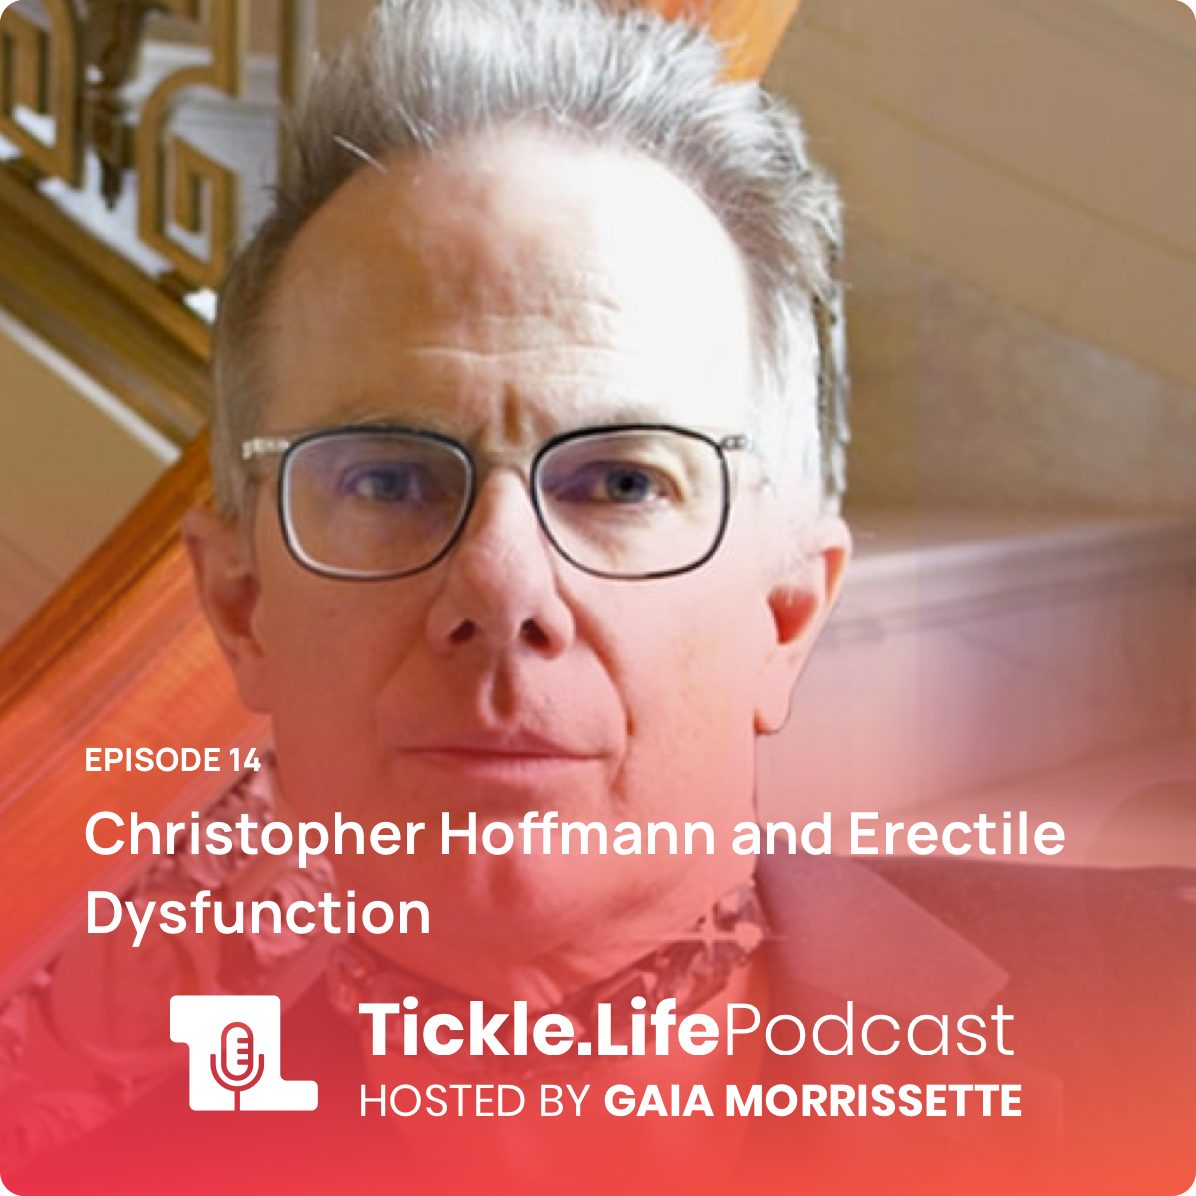 - Christopher Hoffmann and Erectile Dysfunction